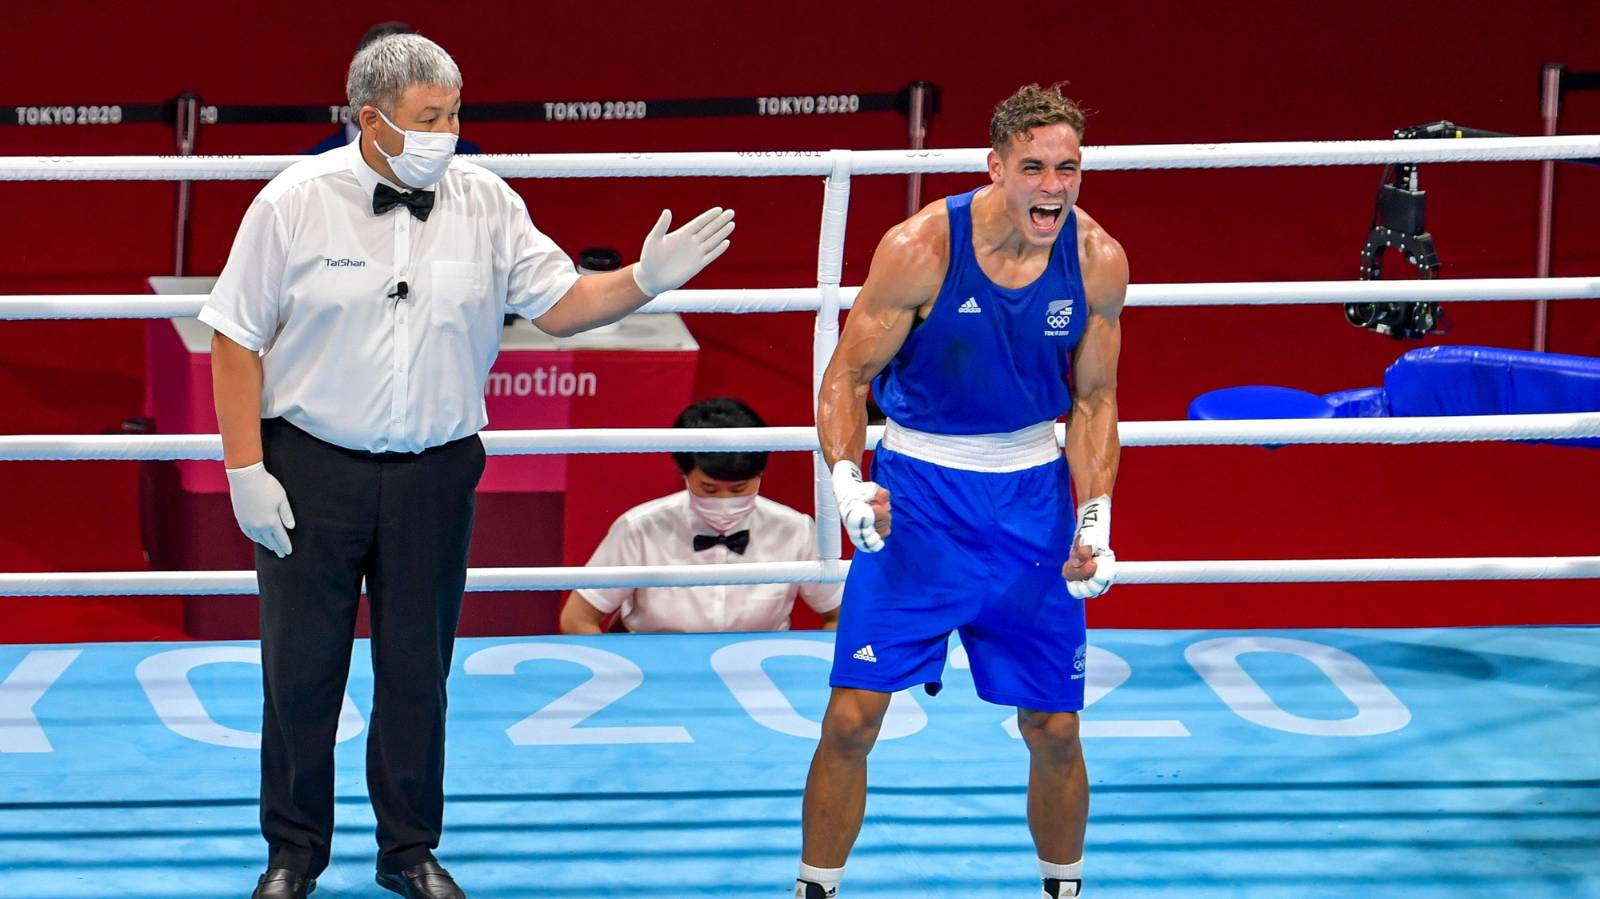 Nyika assured of Olympic medal after beating gutsy Belarusian